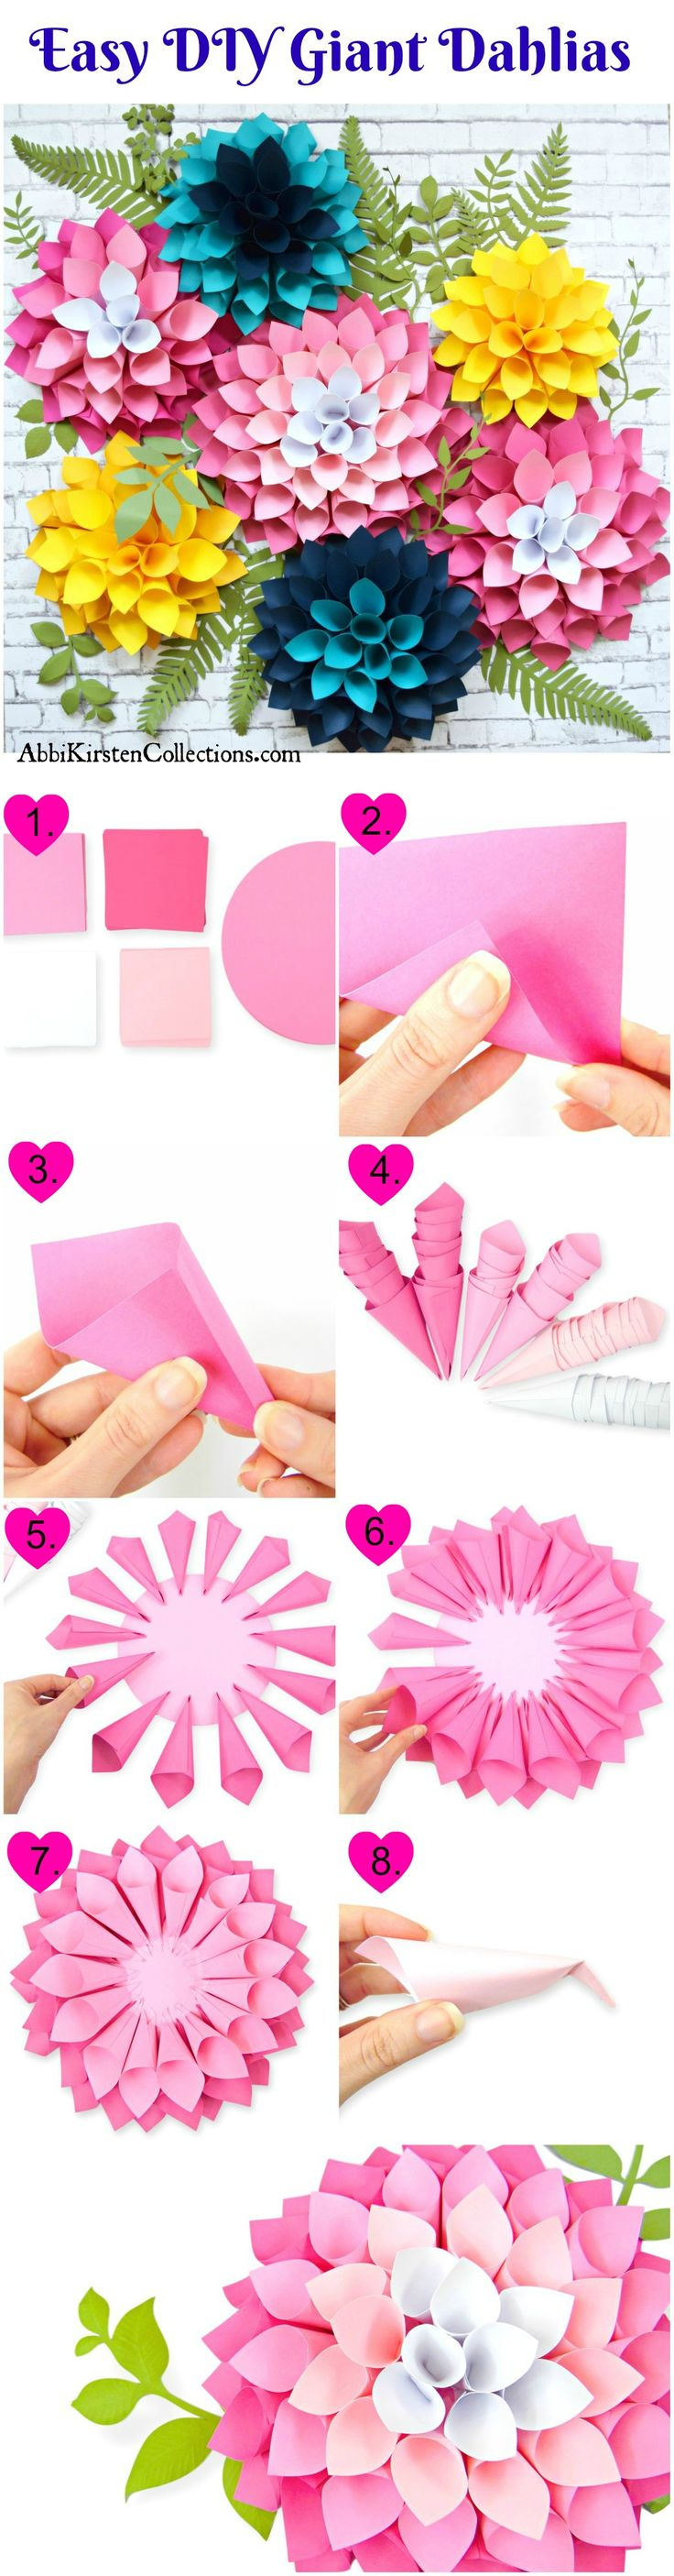 Printable Giant Flower Templates. DIY Giant Paper Dahlia Flowers. Flower Wall Backdrop.